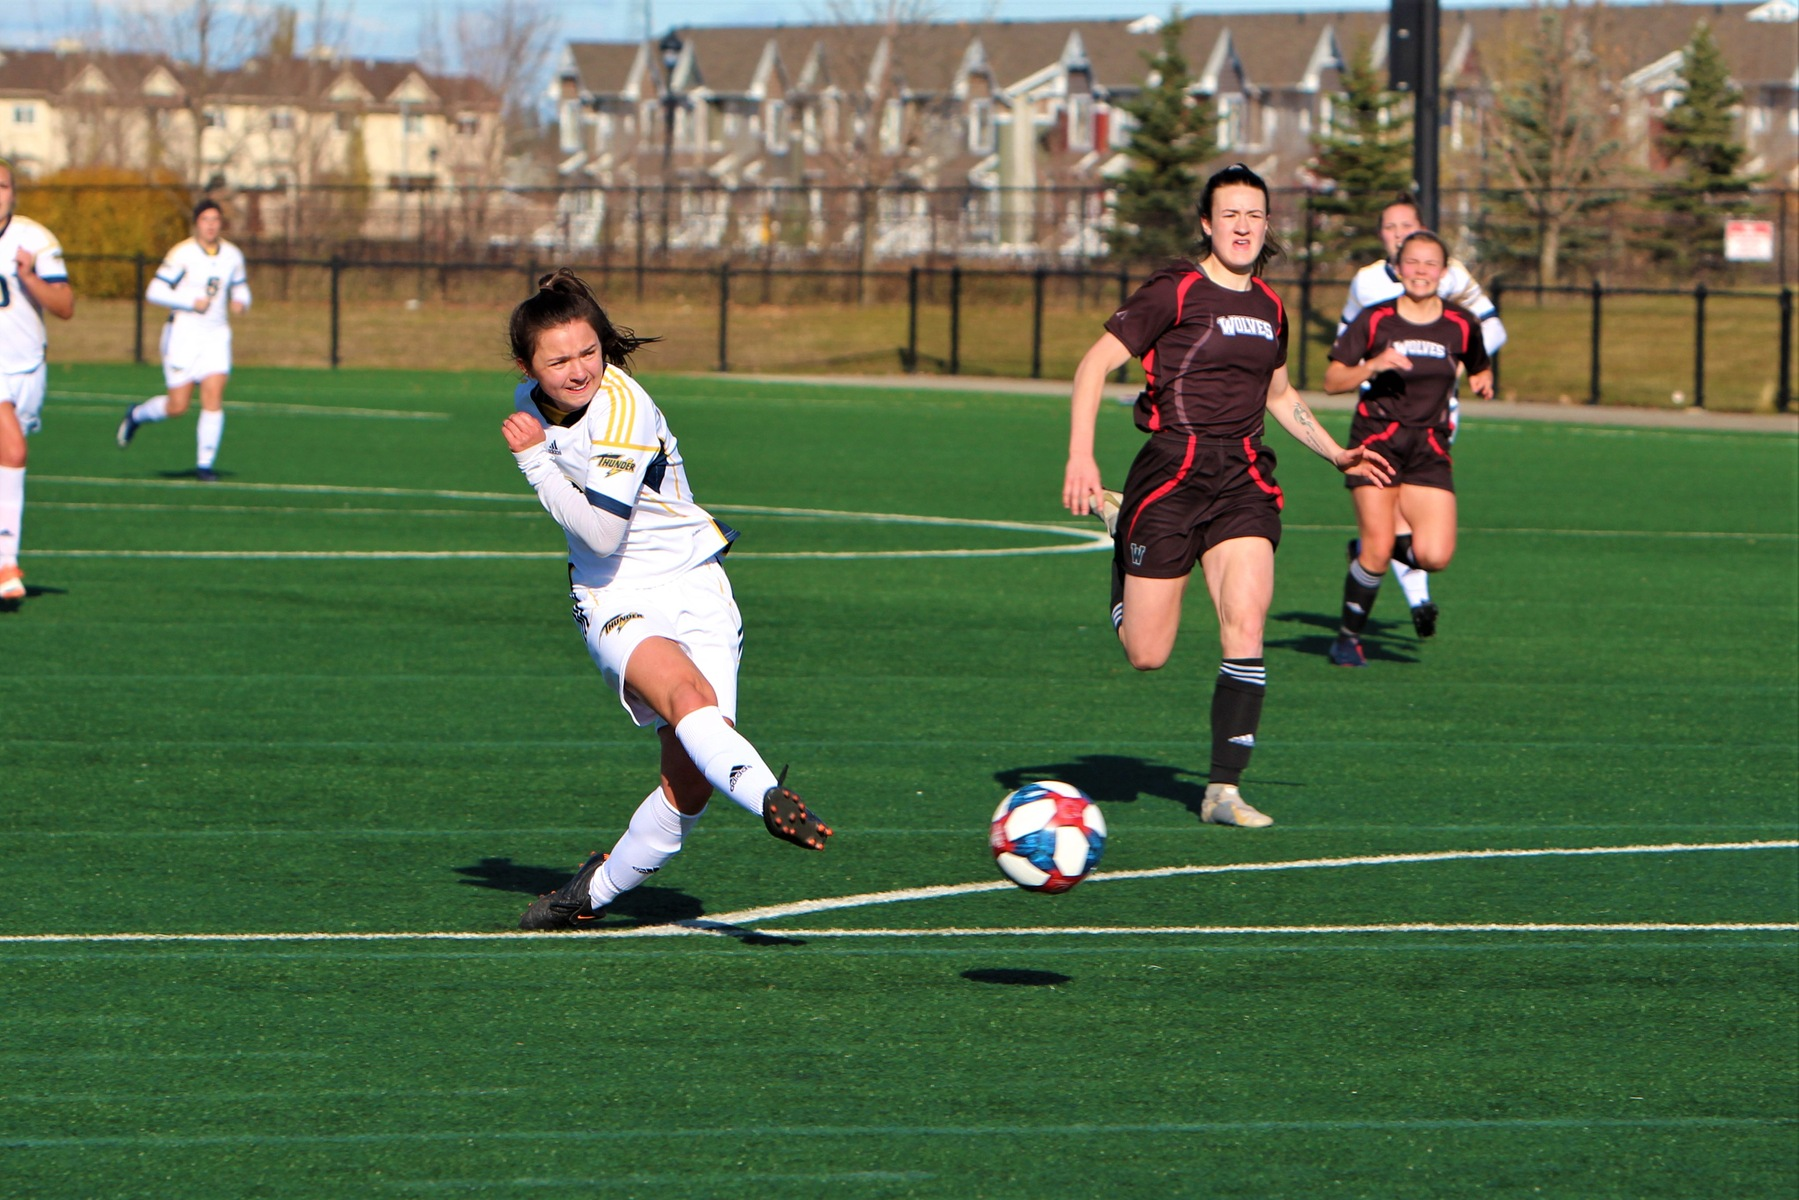 Thunder Women's Soccer Close Out Home Schedule With Big Win Over Wolves